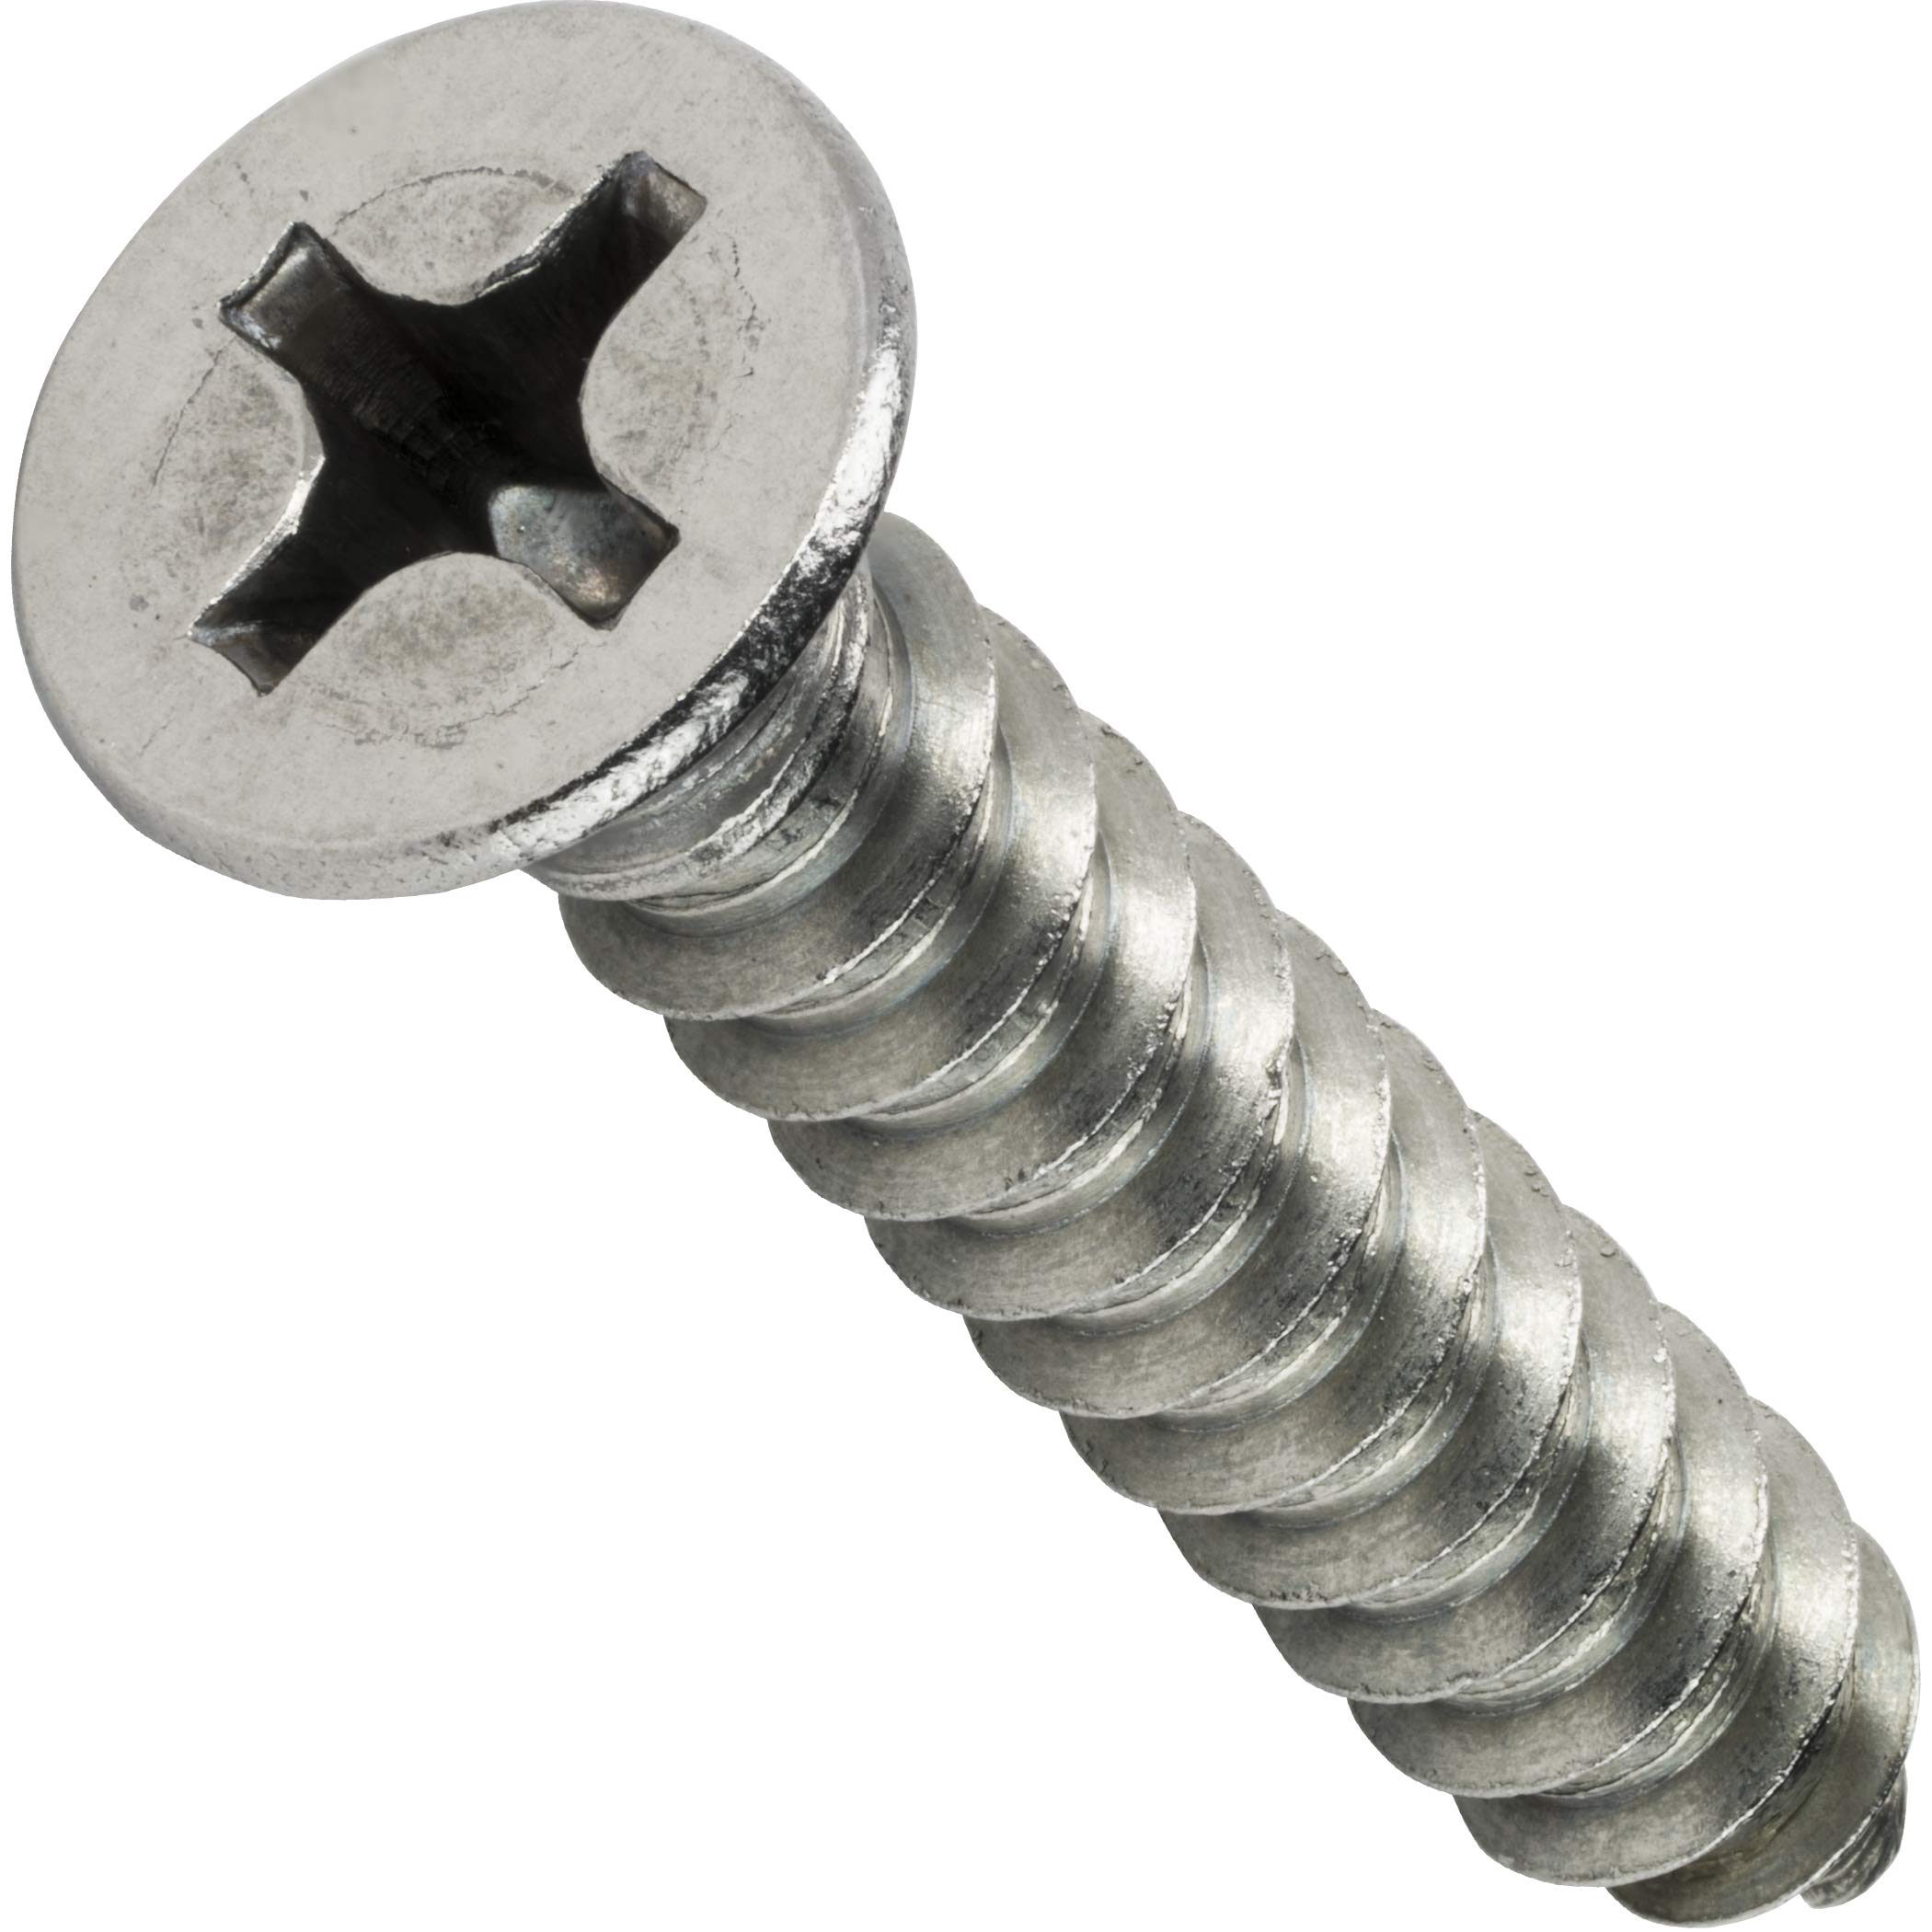 100 Pieces US Stainless 316#12 A4 11 x 1-1/2'' Self Tapping Machine Screw Flat Head Type A Phillips